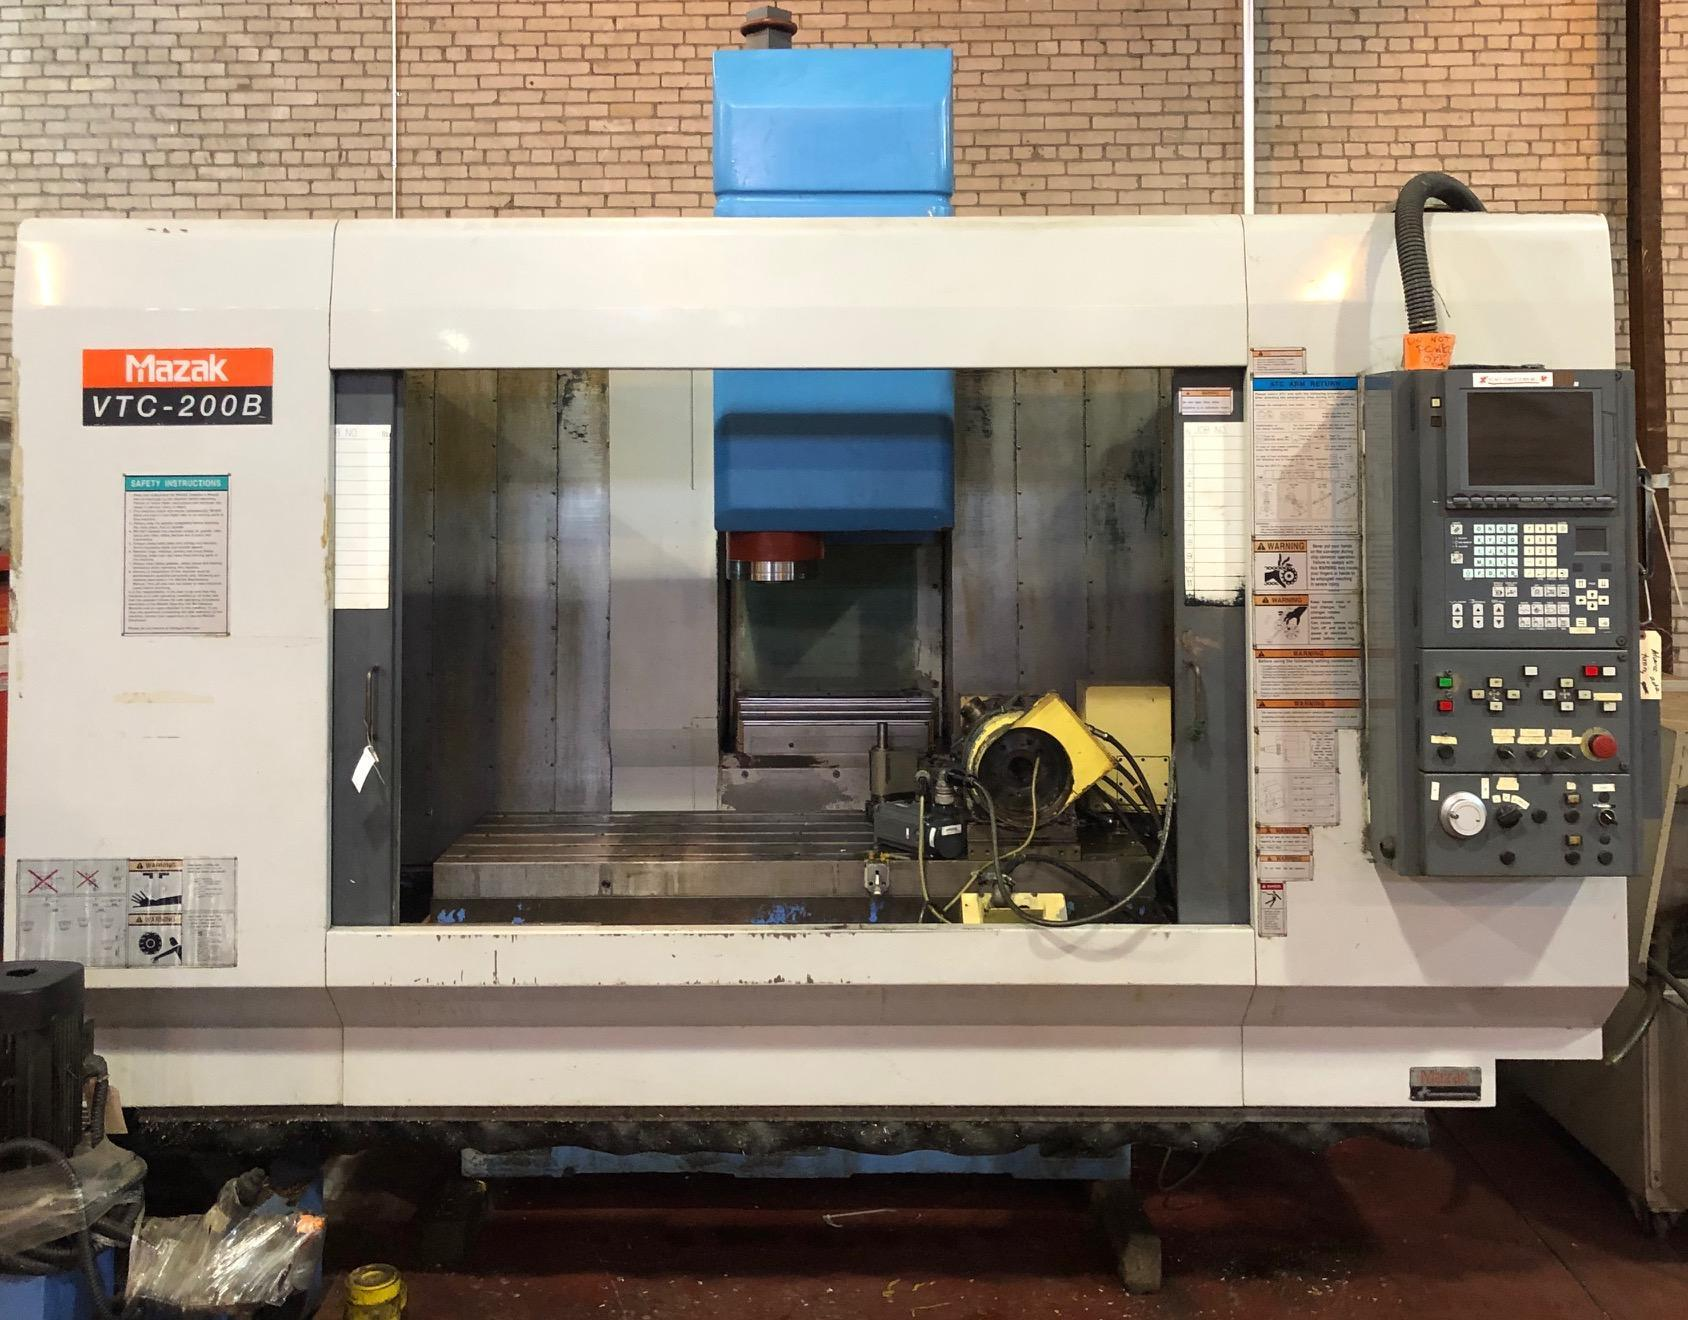 Mazak VTC-200B Vertical Machining Center